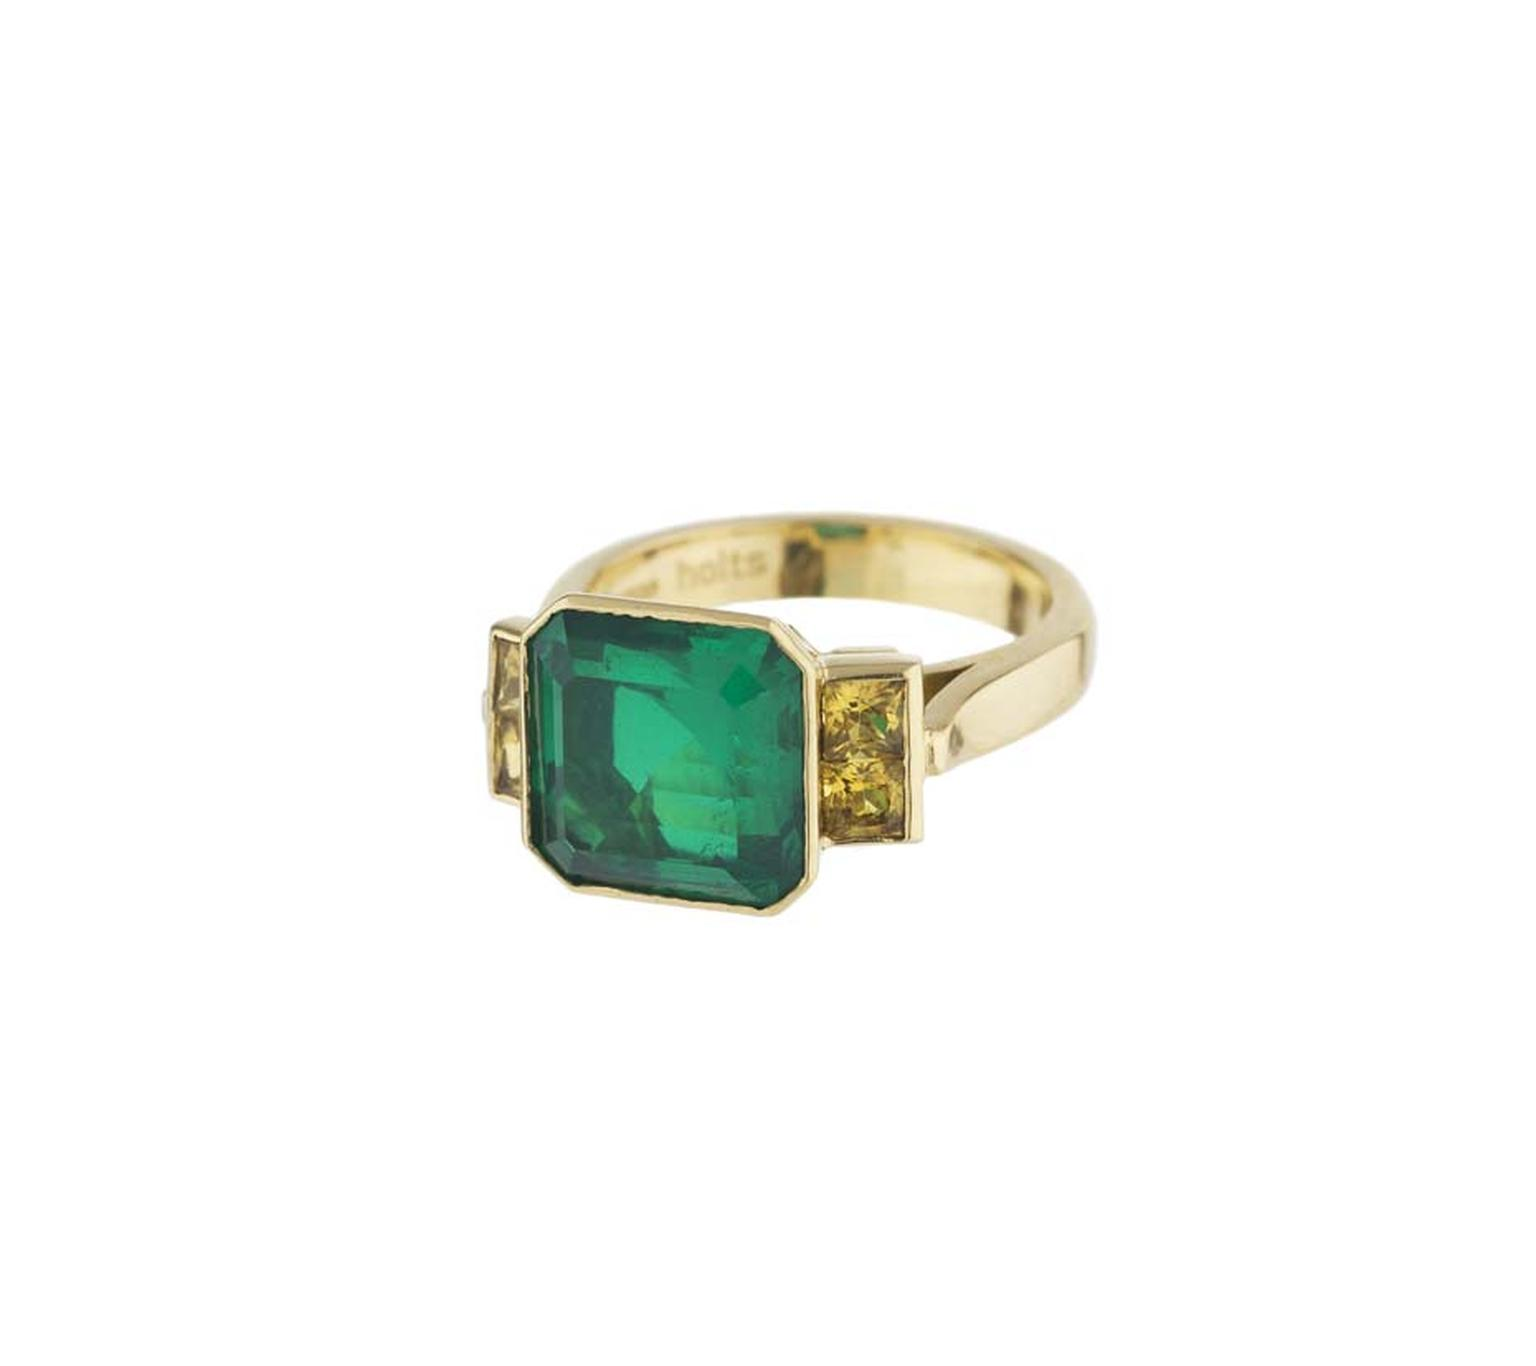 Holts London Strand ring in yellow gold featuring an emerald doublet with yellow sapphire-set shoulders (£2,850).